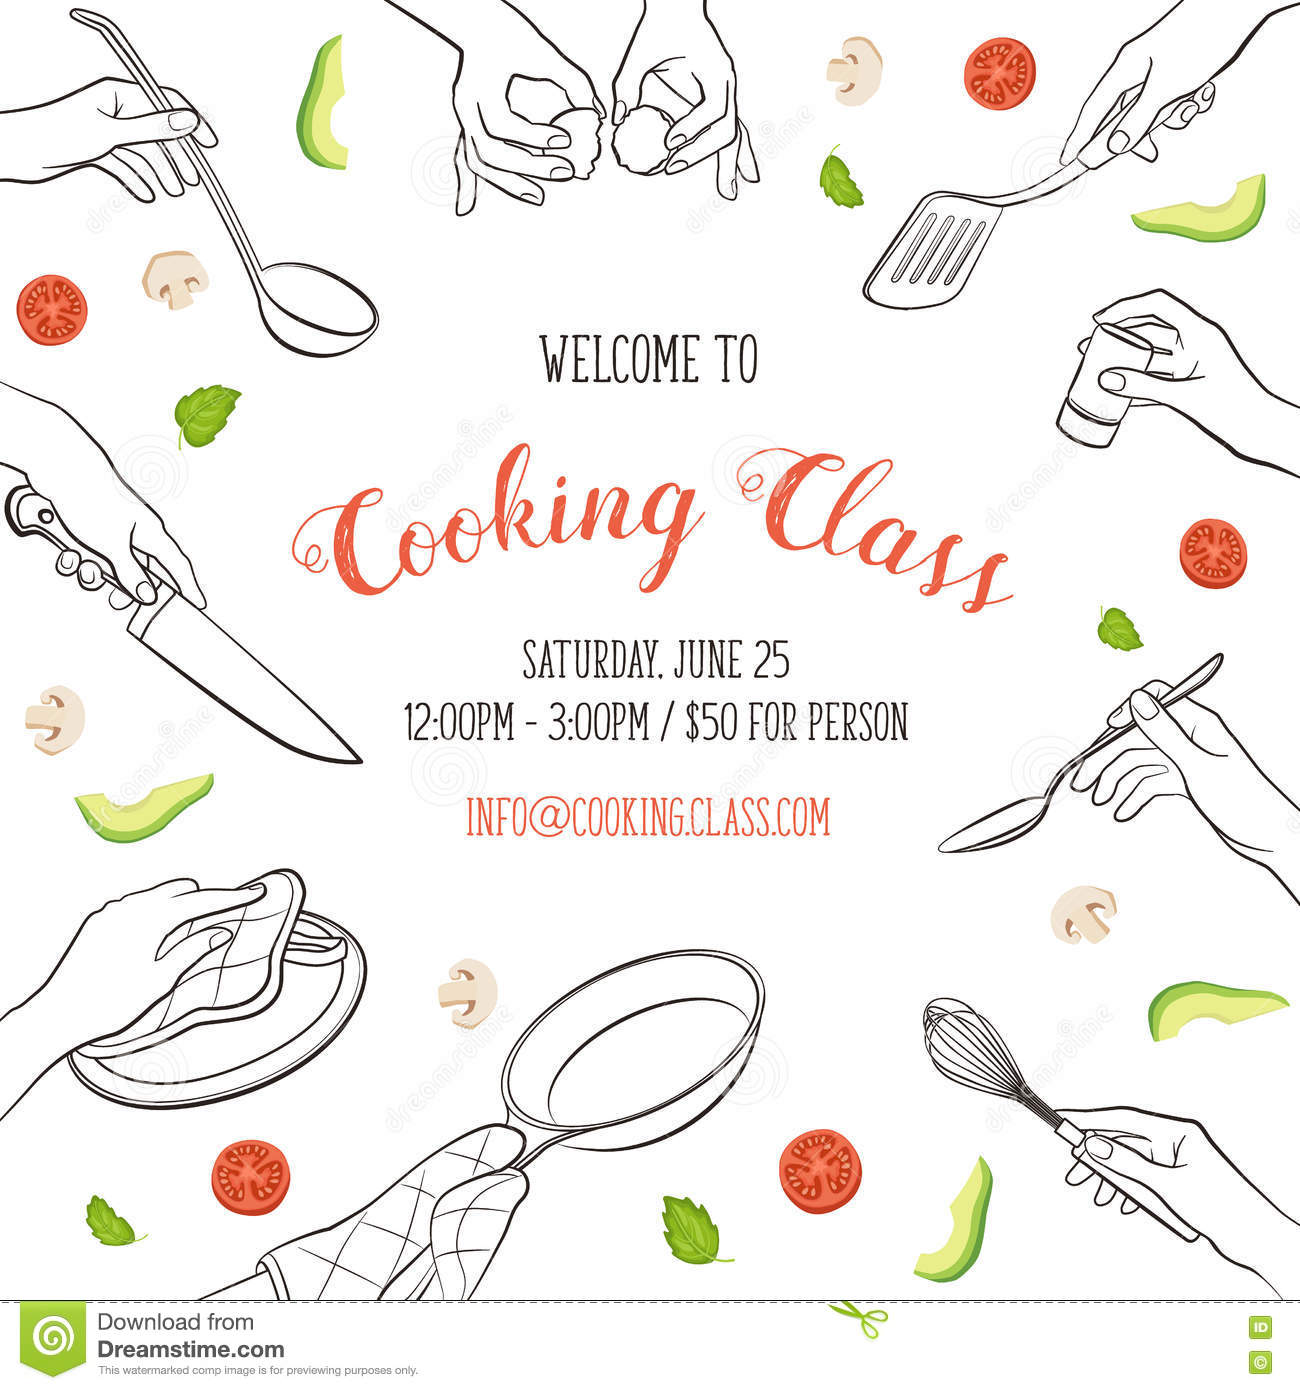 Cooking Certificate Template Endearing Cooking Class Template Stock Vectorillustration Of Restaurant .